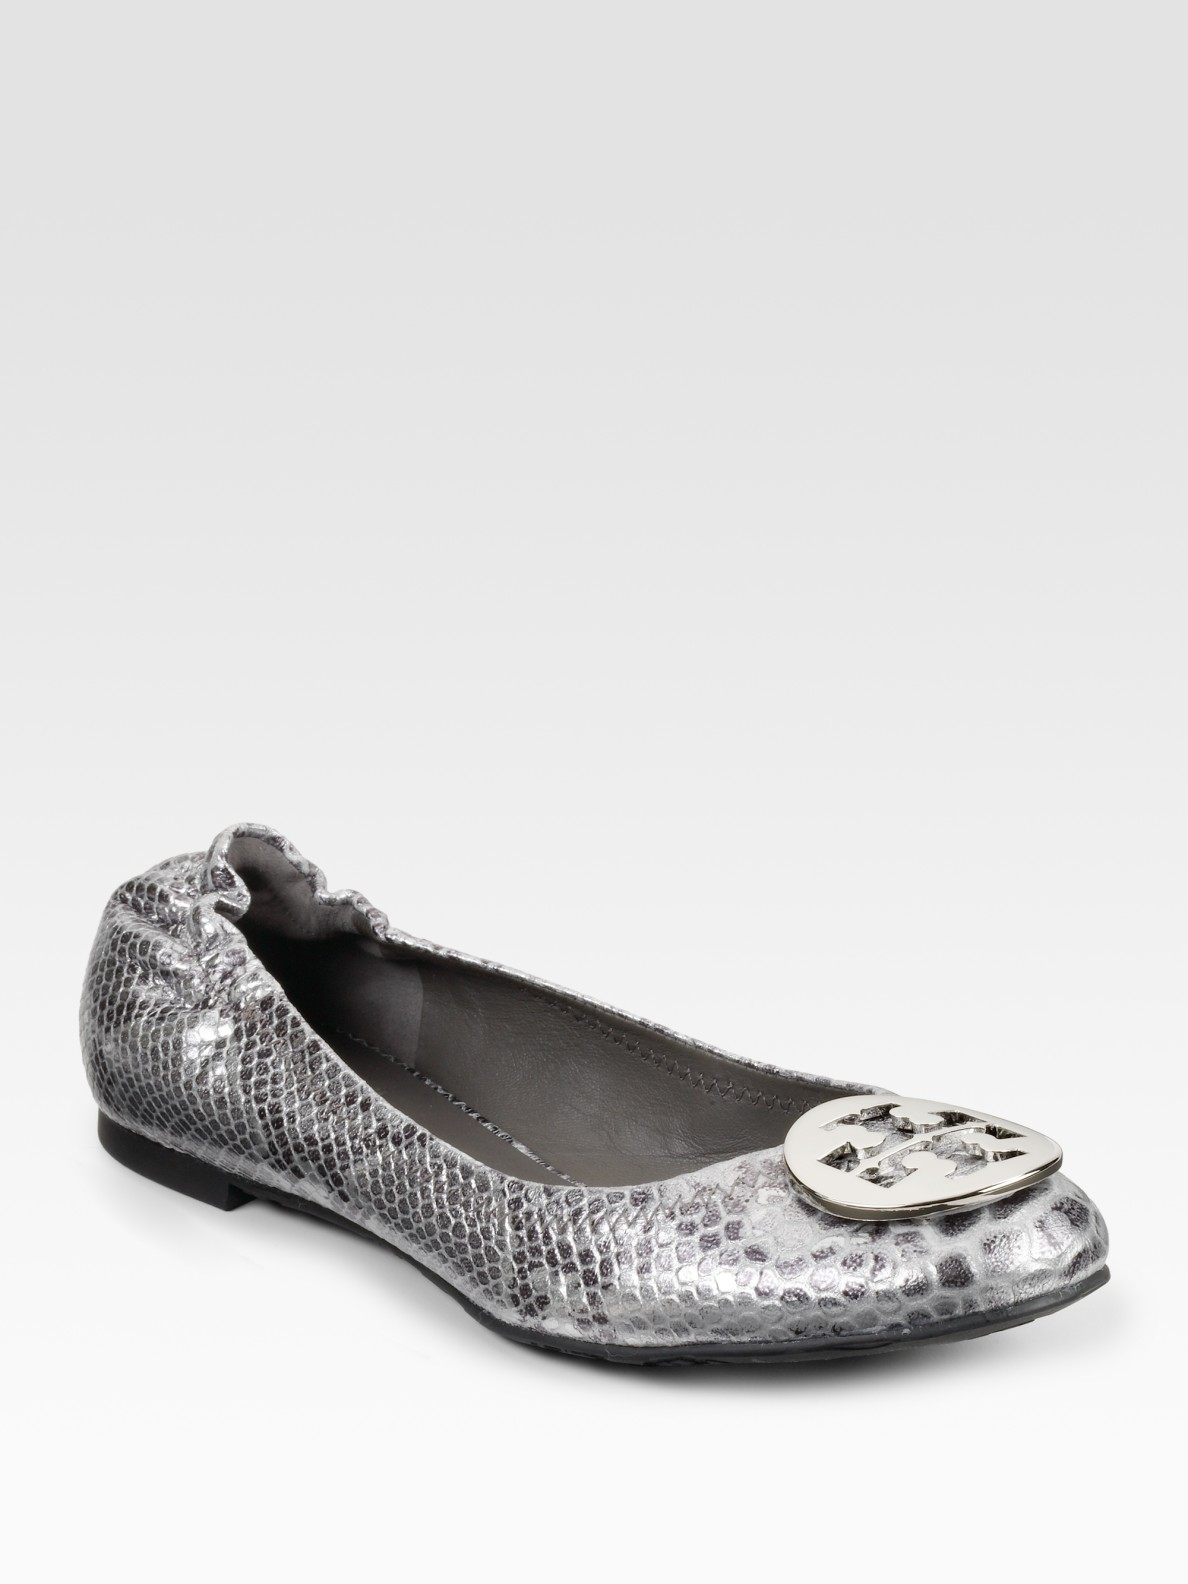 8f3541e9c7a8 Lyst - Tory Burch Reva Snake-embossed Leather Ballet Flats in Metallic